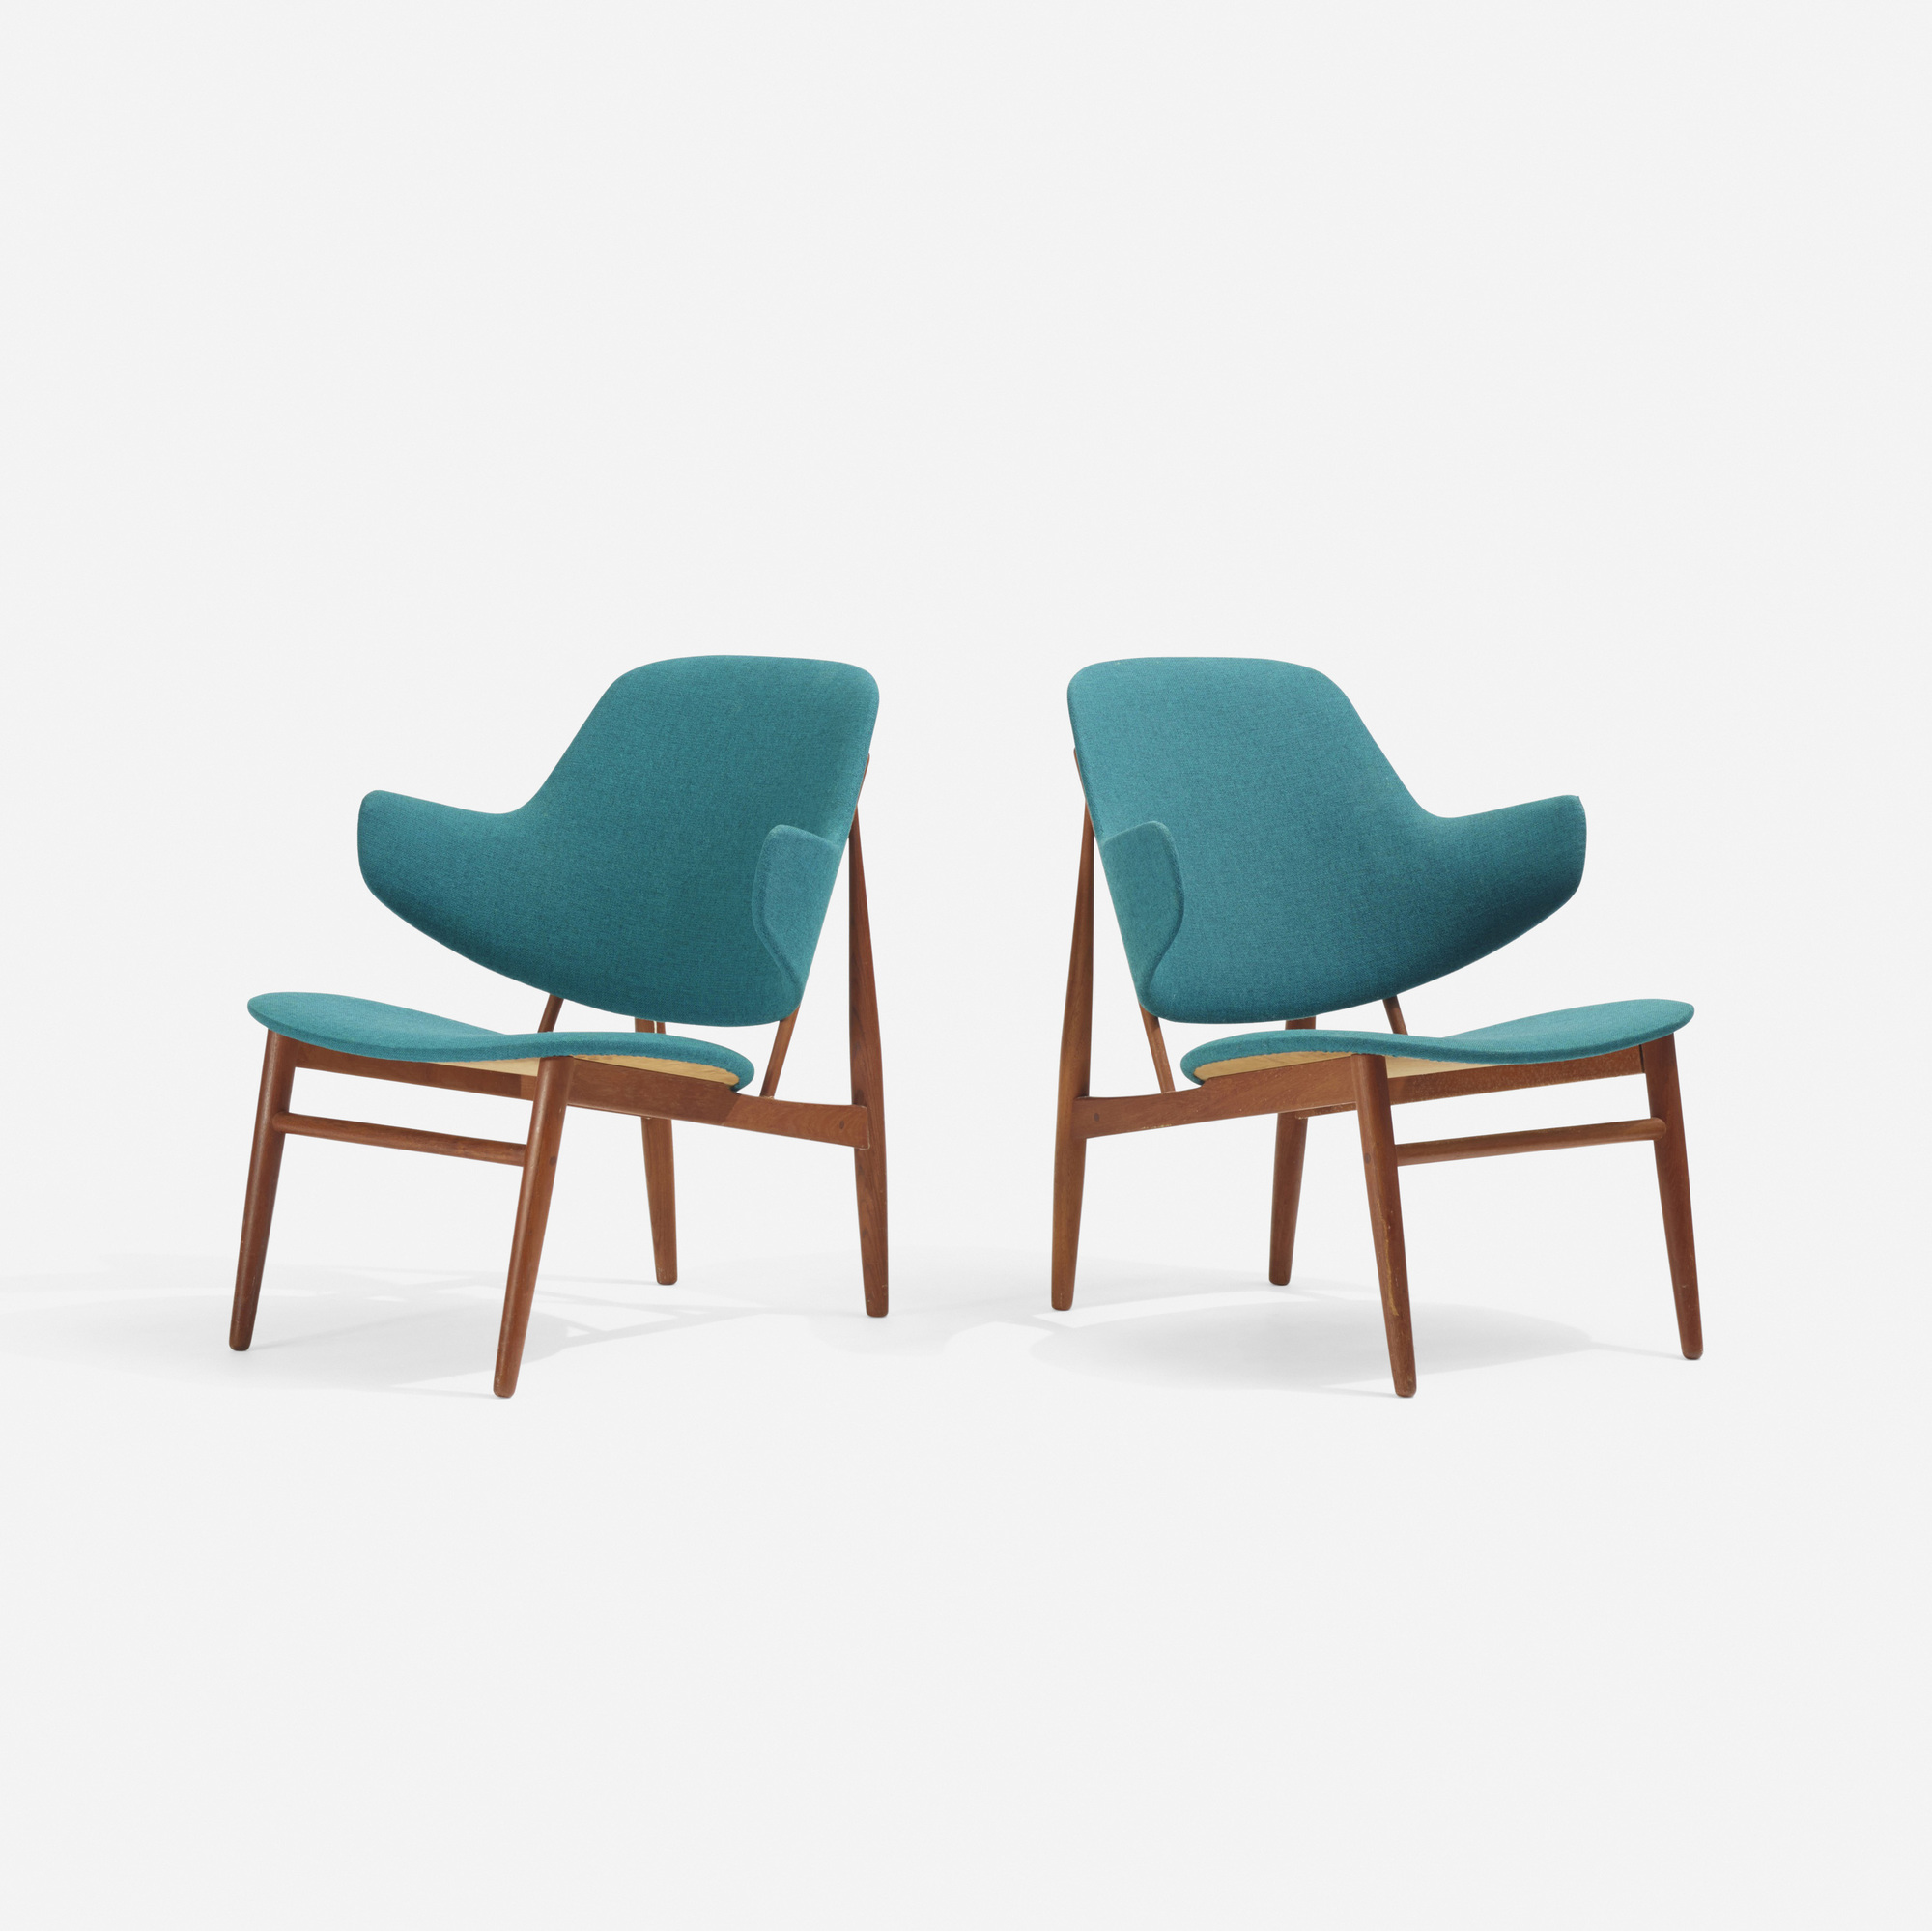 286: Ib Kofod-Larsen / lounge chairs, pair (2 of 3)